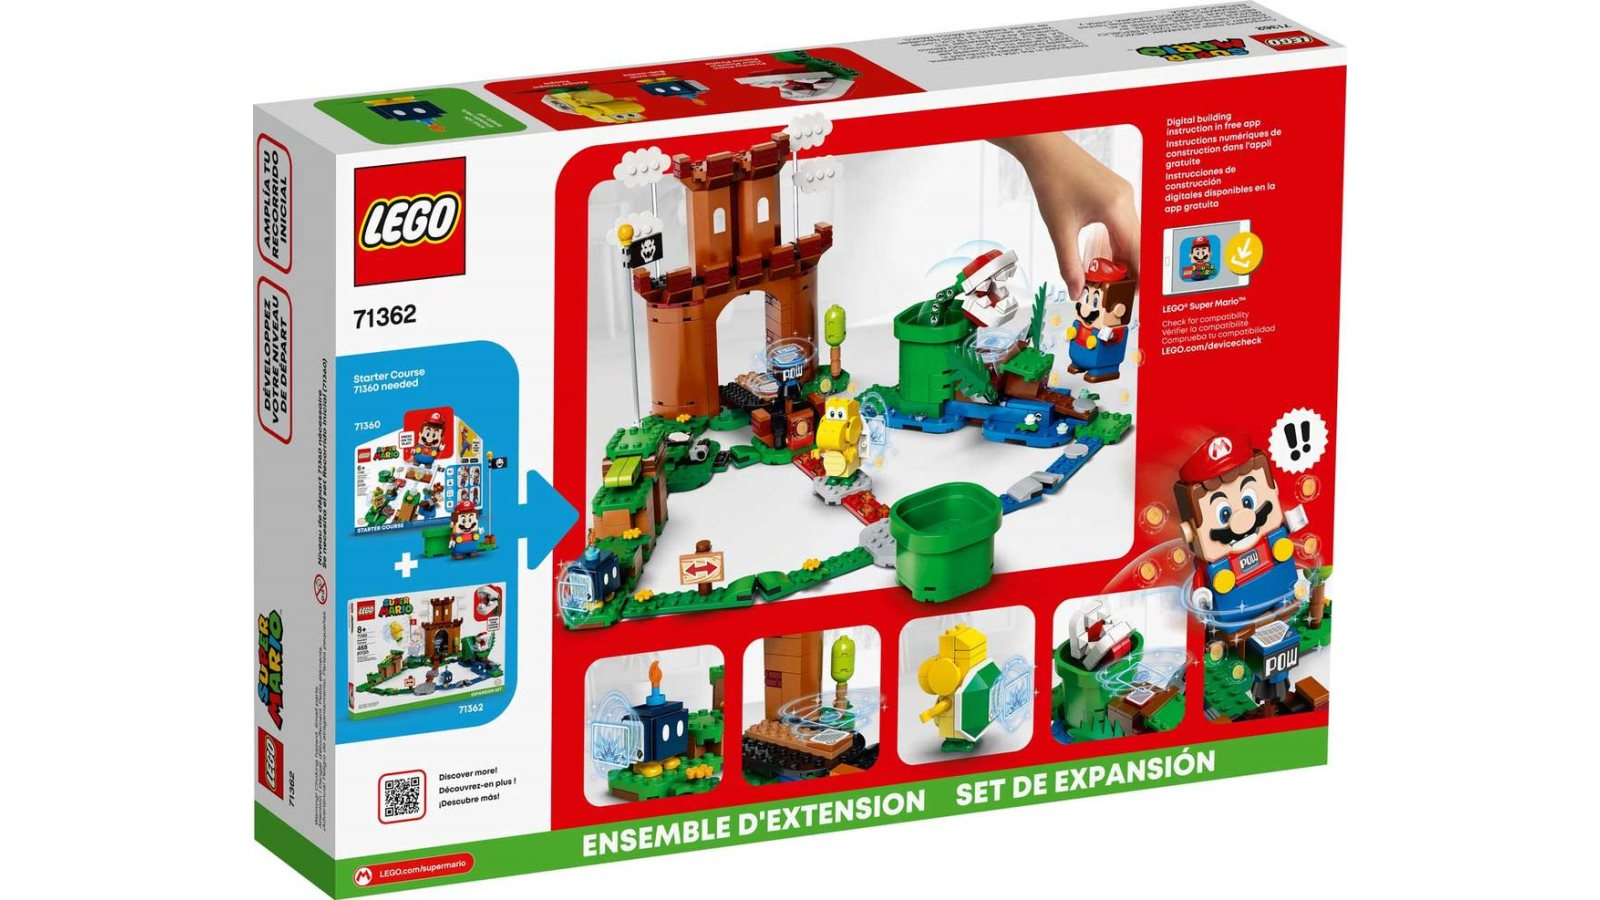 LEGO 71362 Guarded Fortress Expansion Set - אריזה אחורית